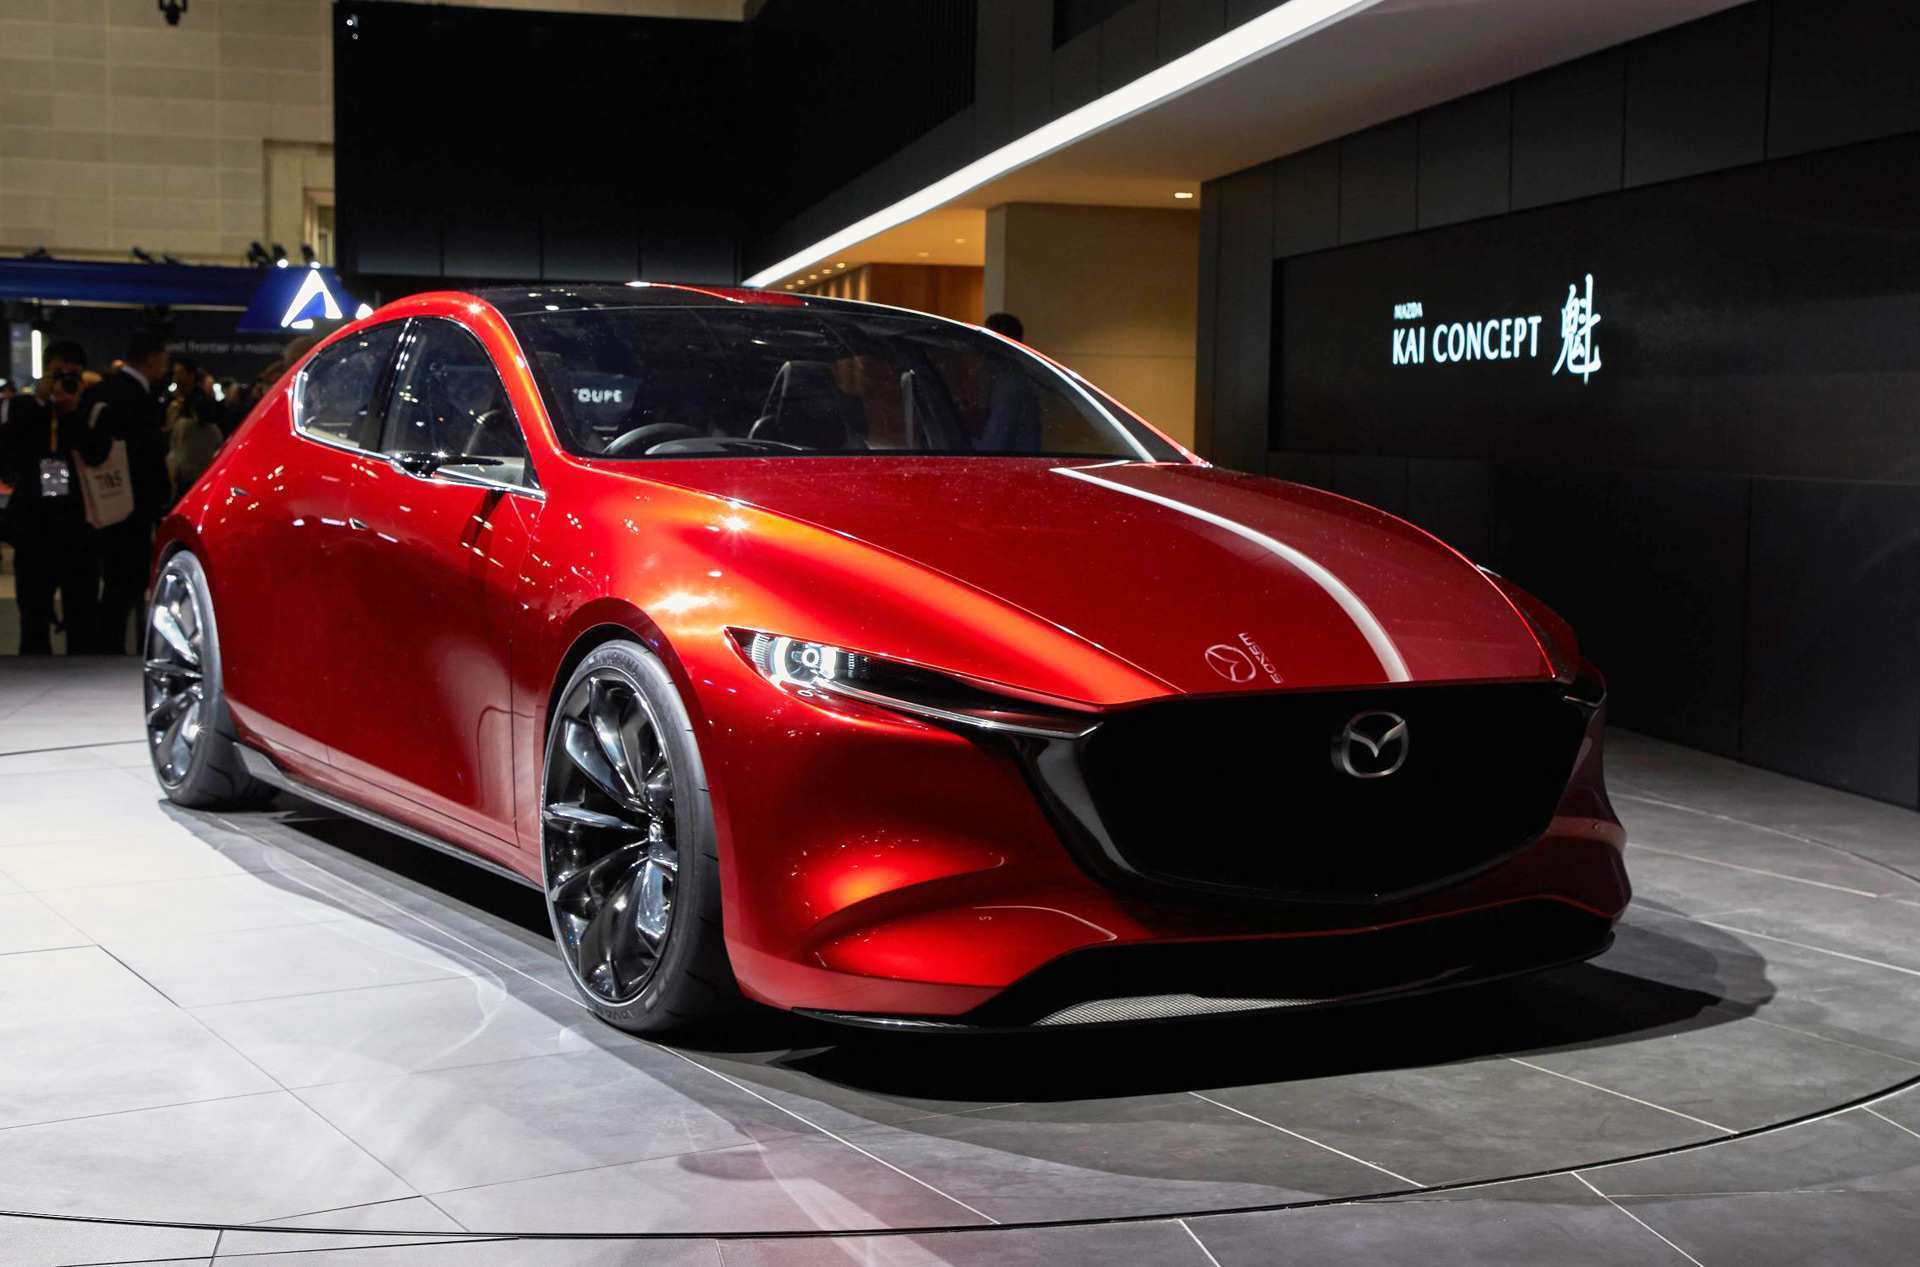 71 All New Mazda 3 2019 Gt Ratings for Mazda 3 2019 Gt